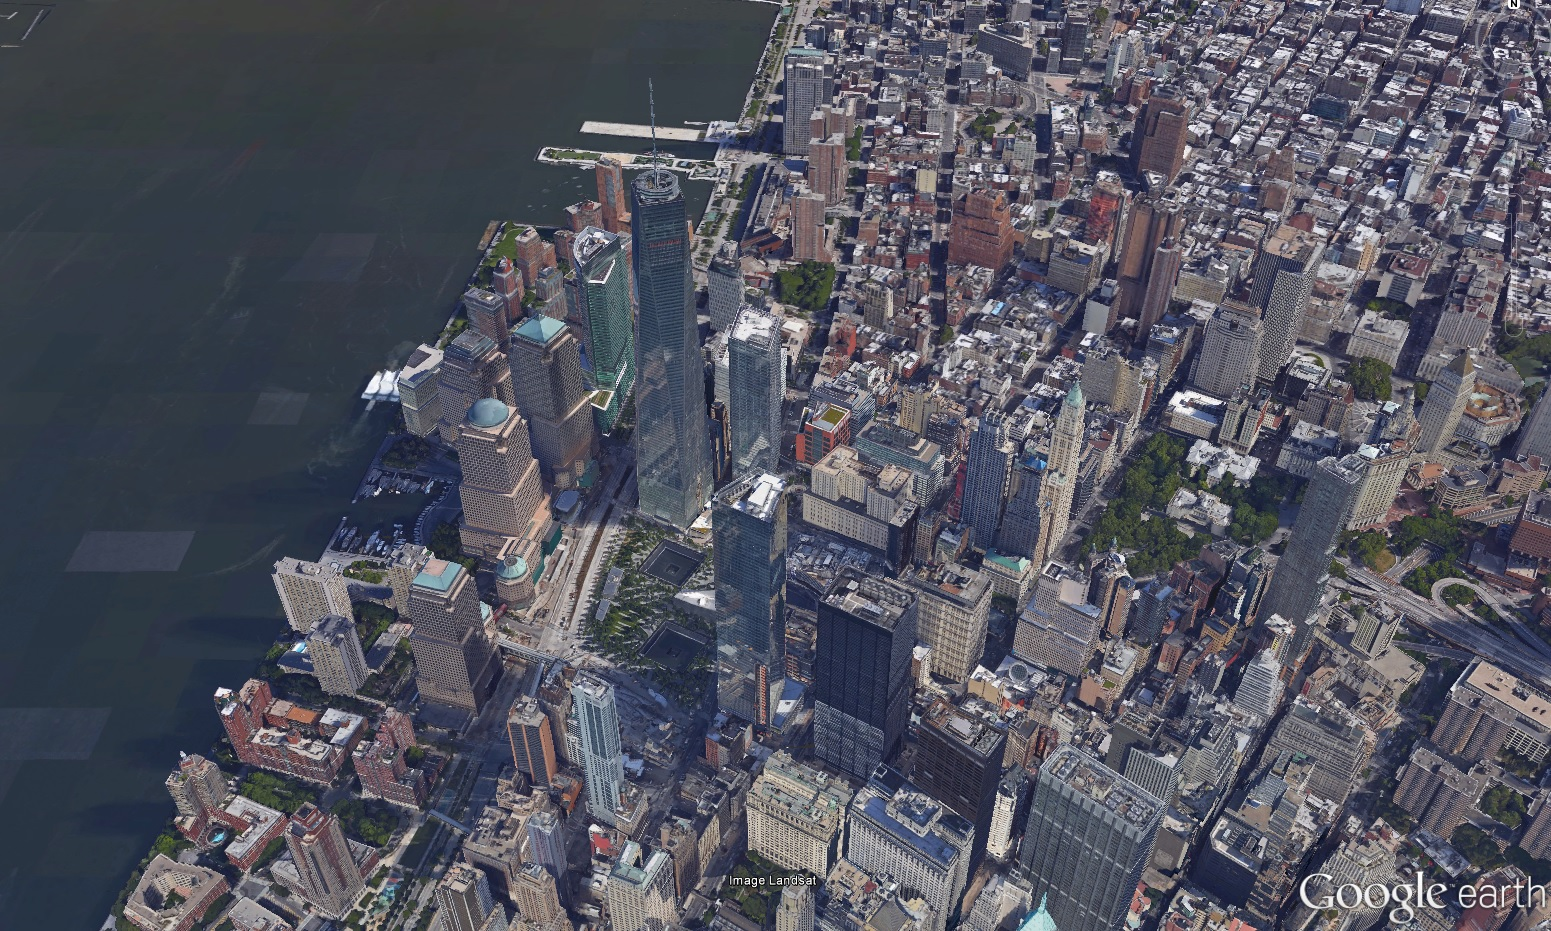 Google_earth_gratis_vista_3d_1